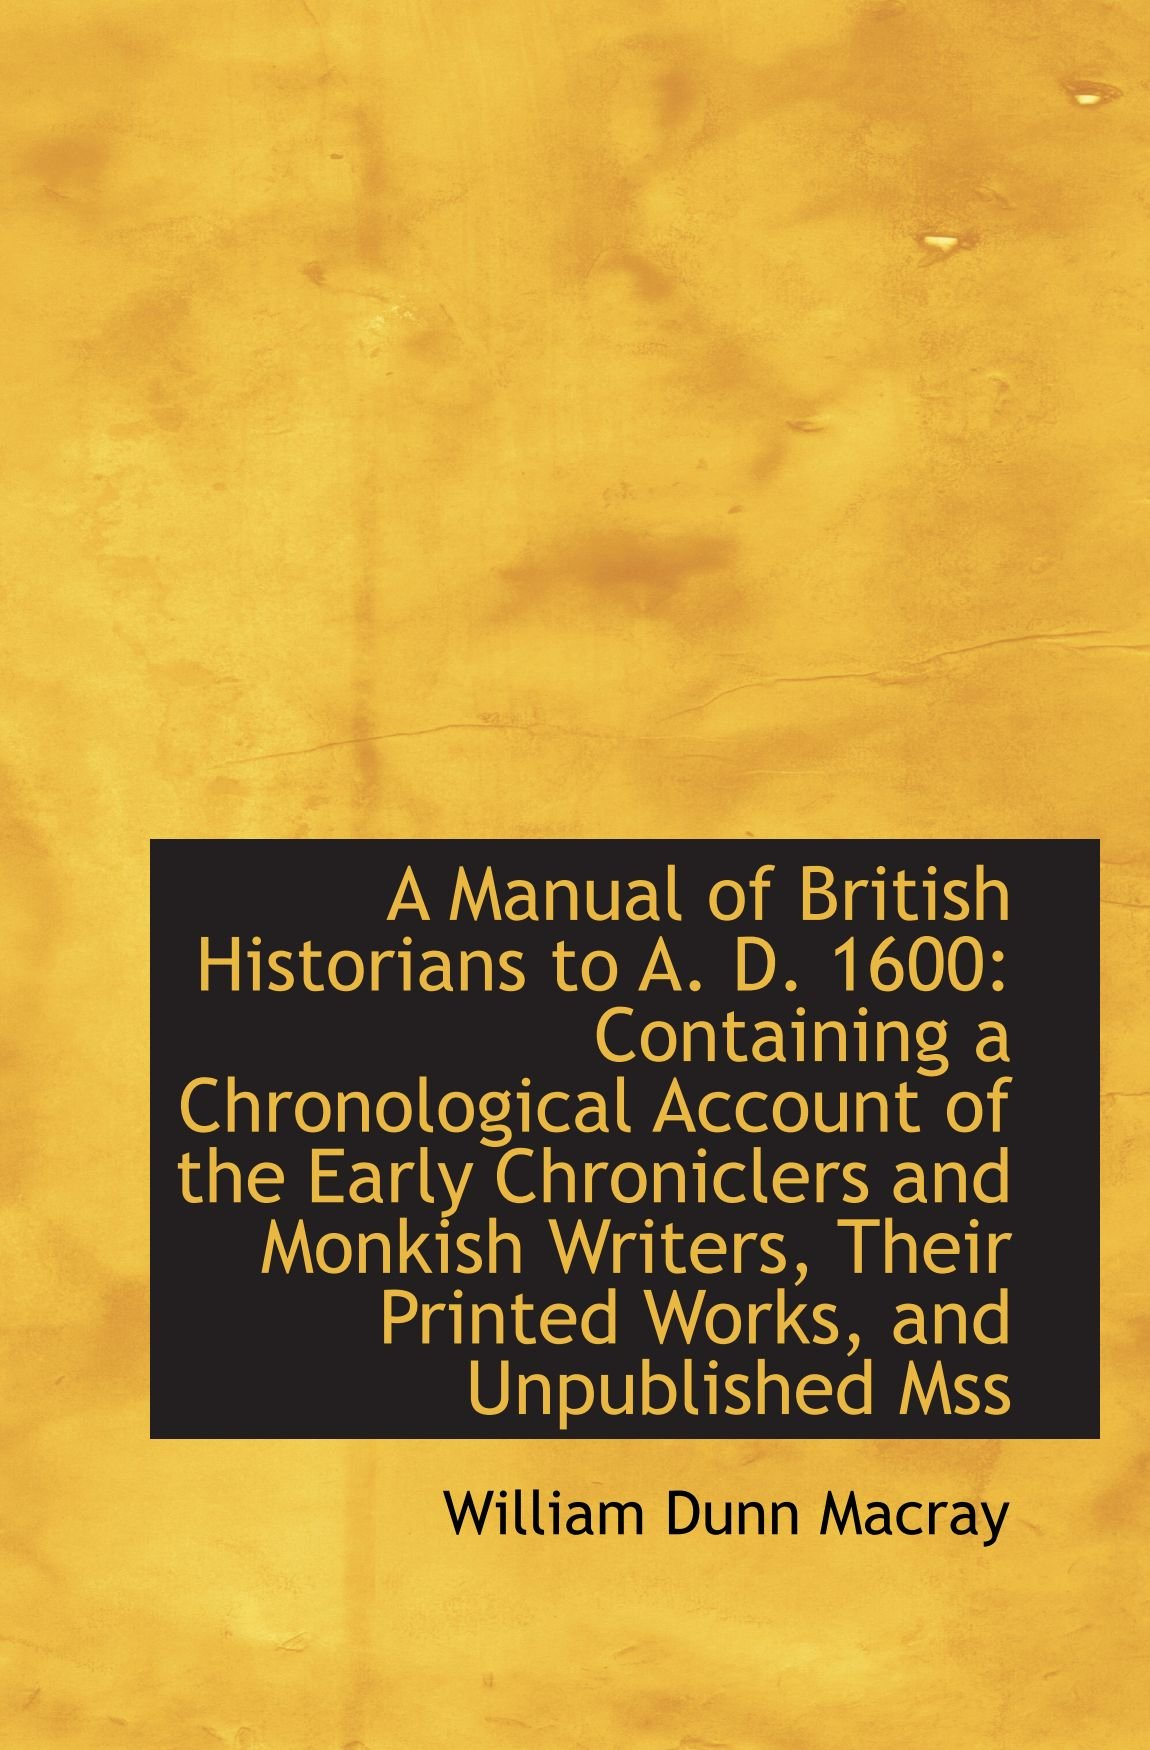 A Manual of British Historians to A. D. 1600: Containing a Chronological Account of the Early Chroni pdf